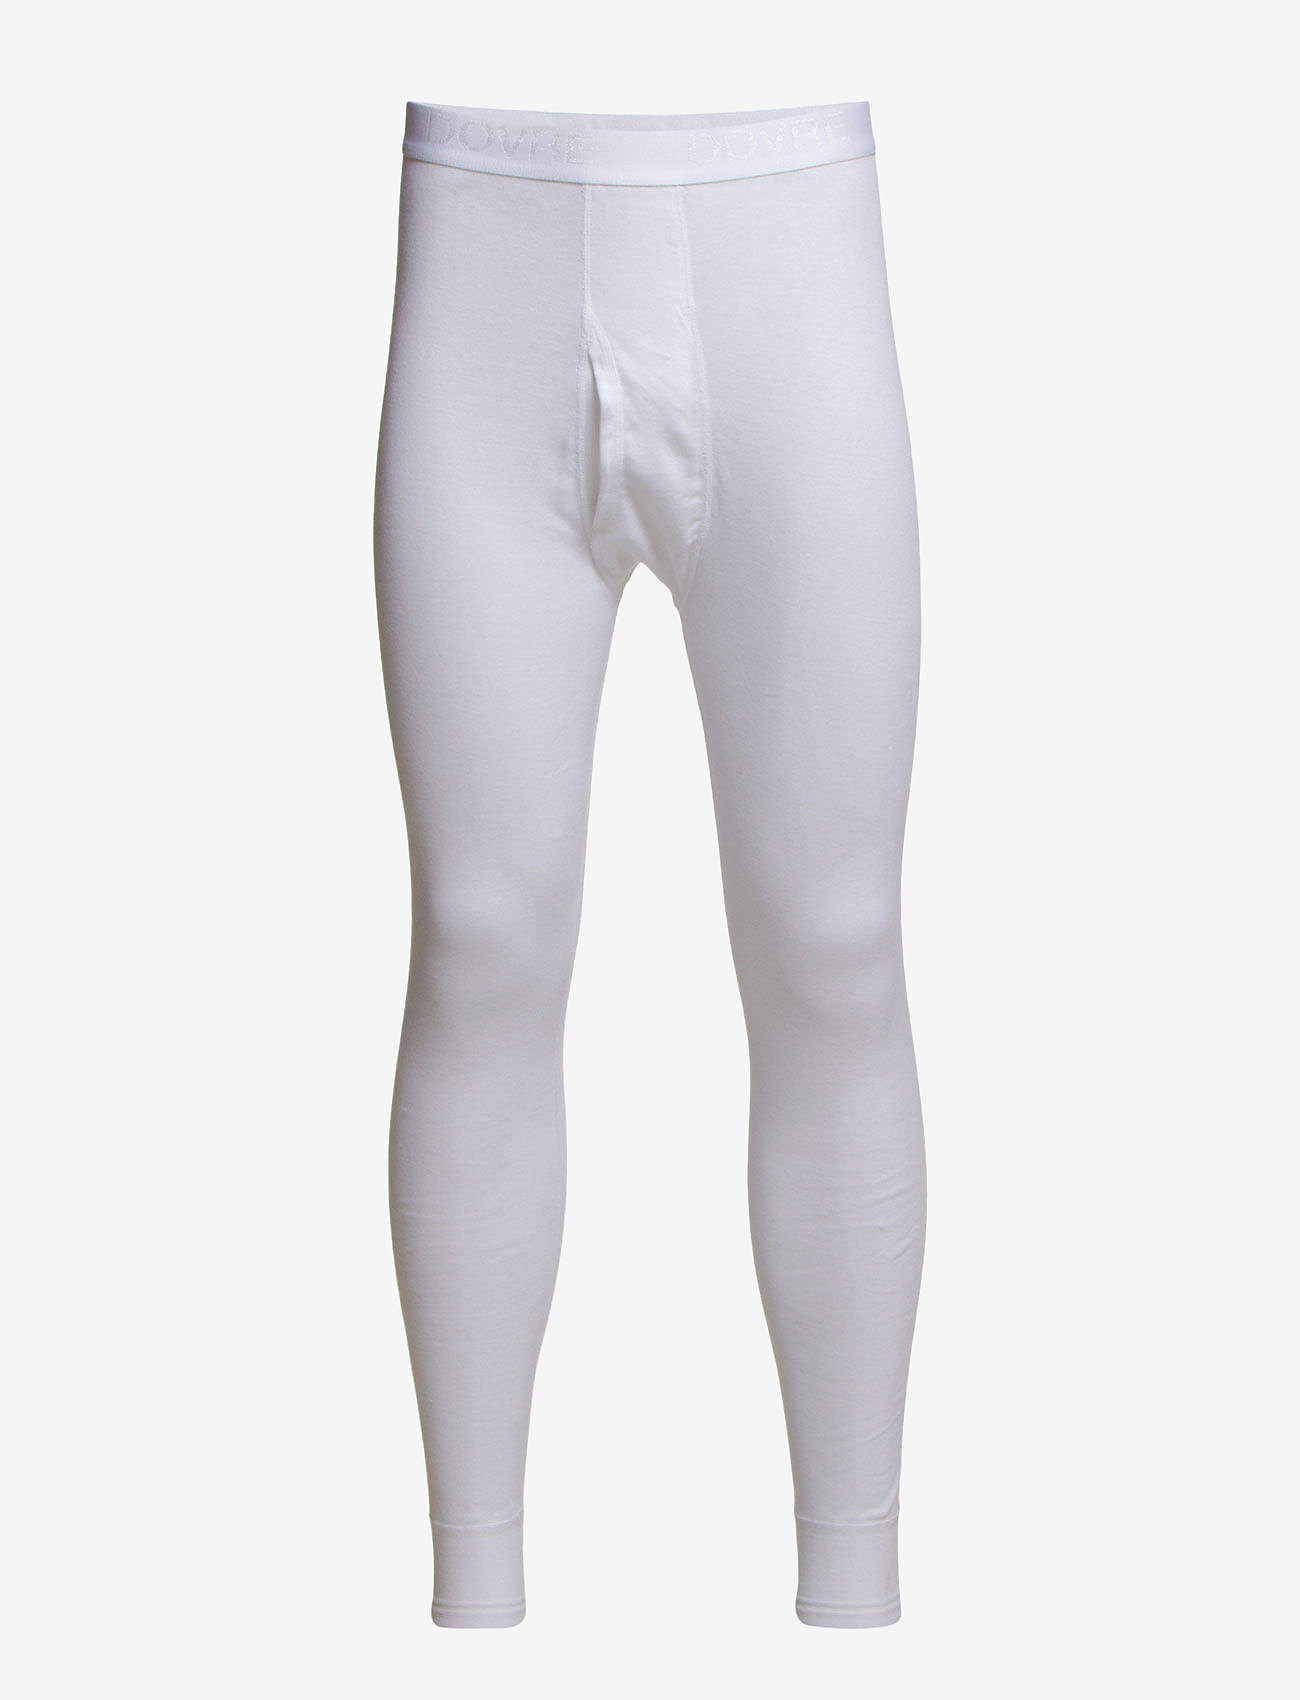 Dovre - Benklæde m/lang ben og gylp - base layer bottoms - white - 1